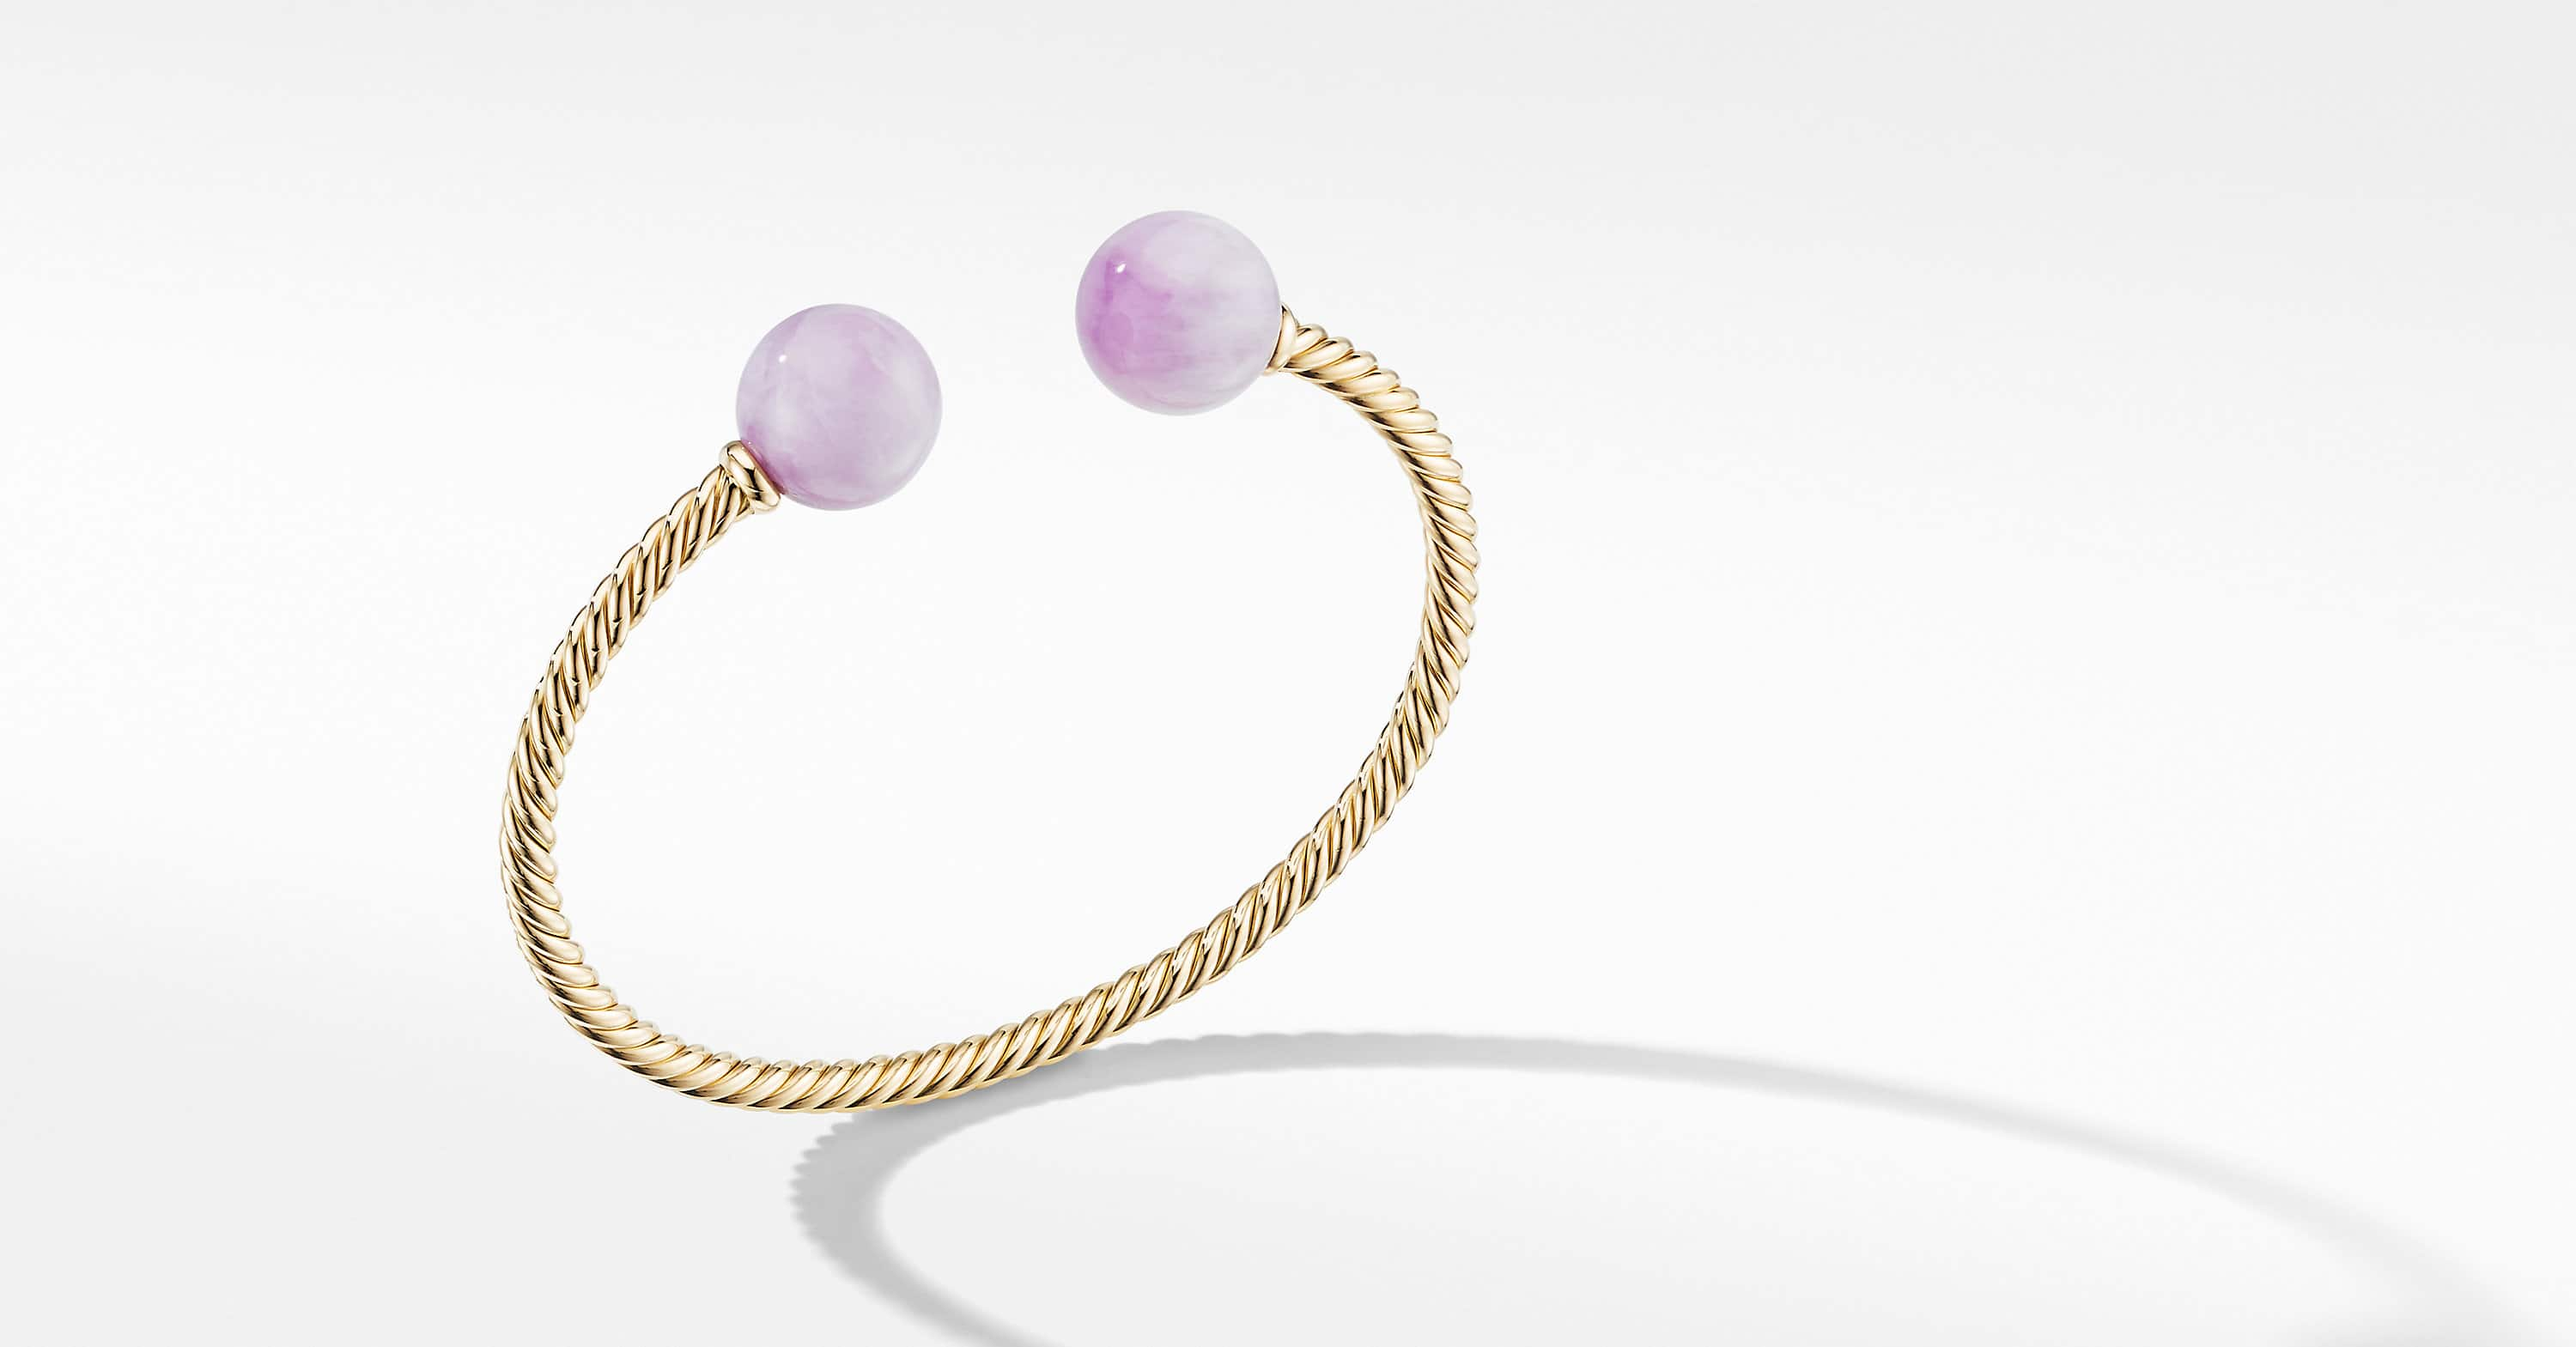 Solari XL Cable Bracelet in 18K Yellow Gold, 3.5mm